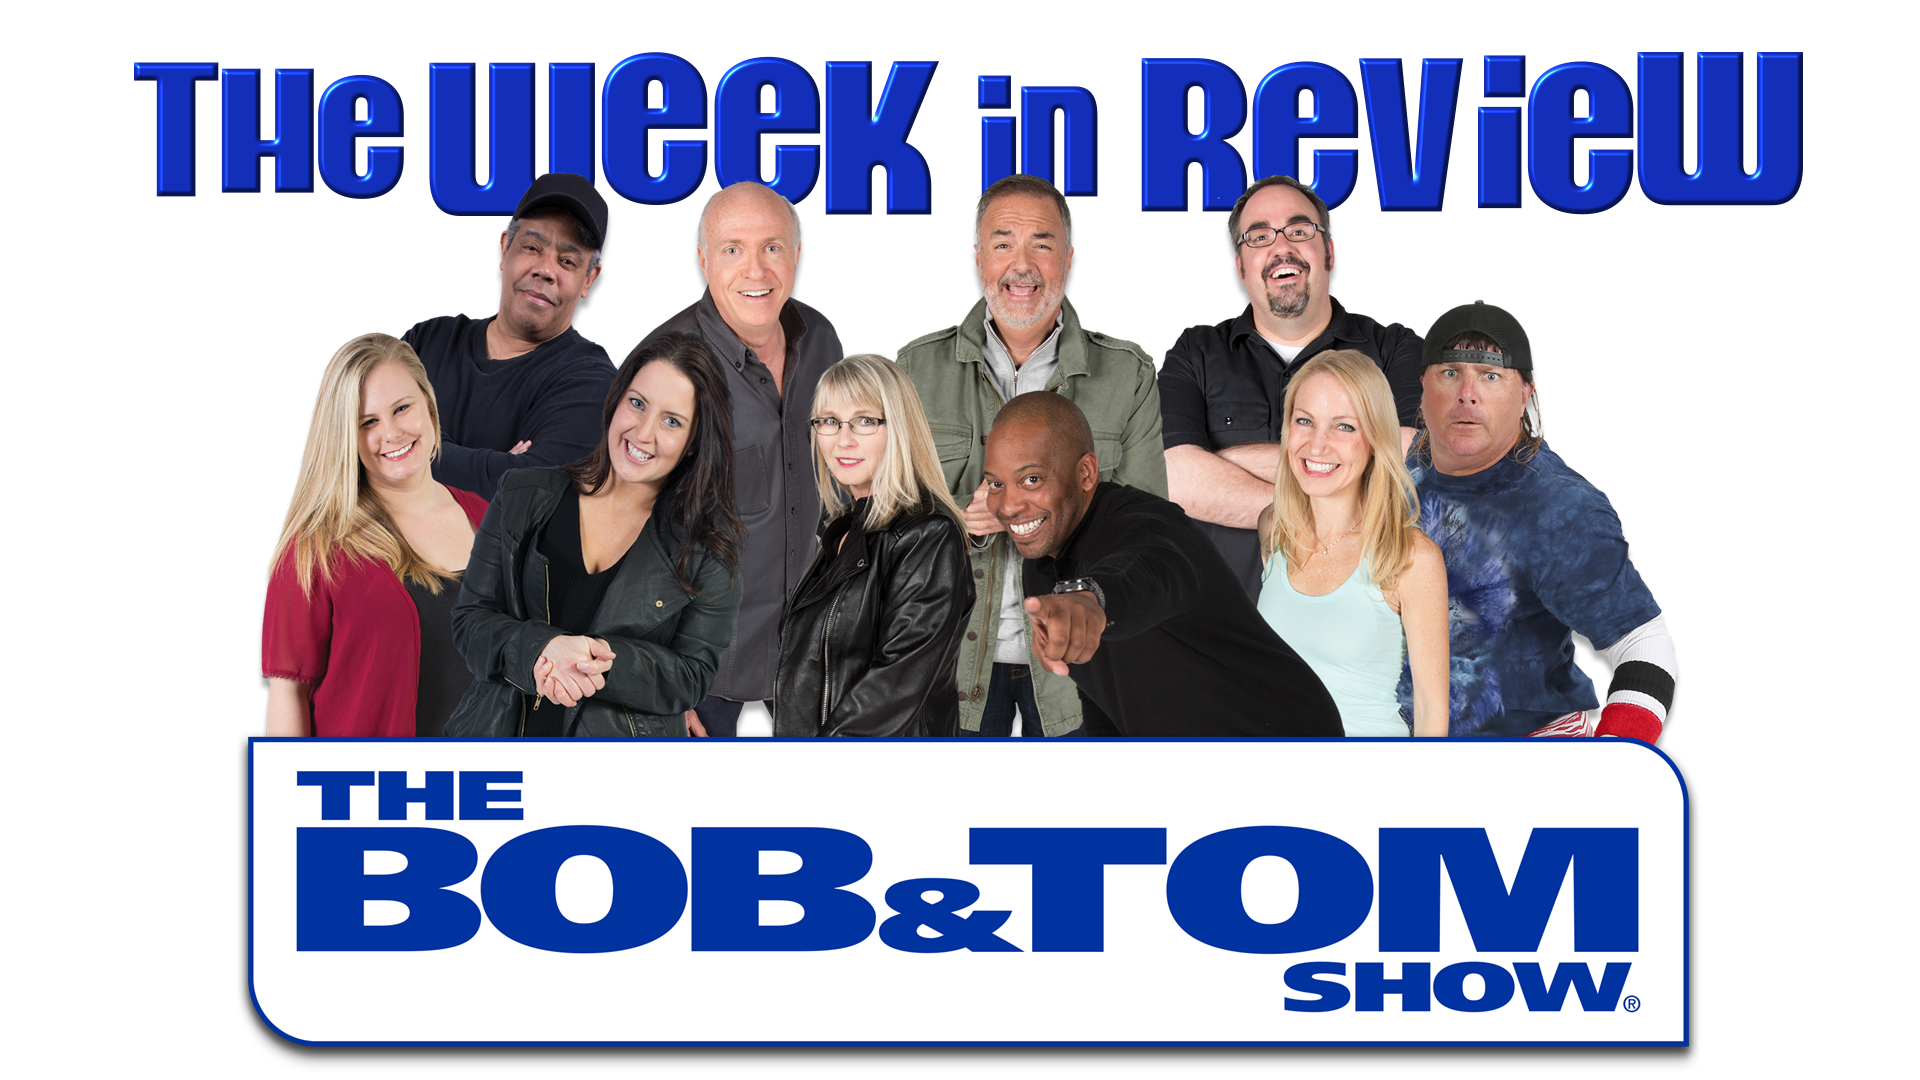 The BOB & TOM Show Week in Review – August 31, 2018